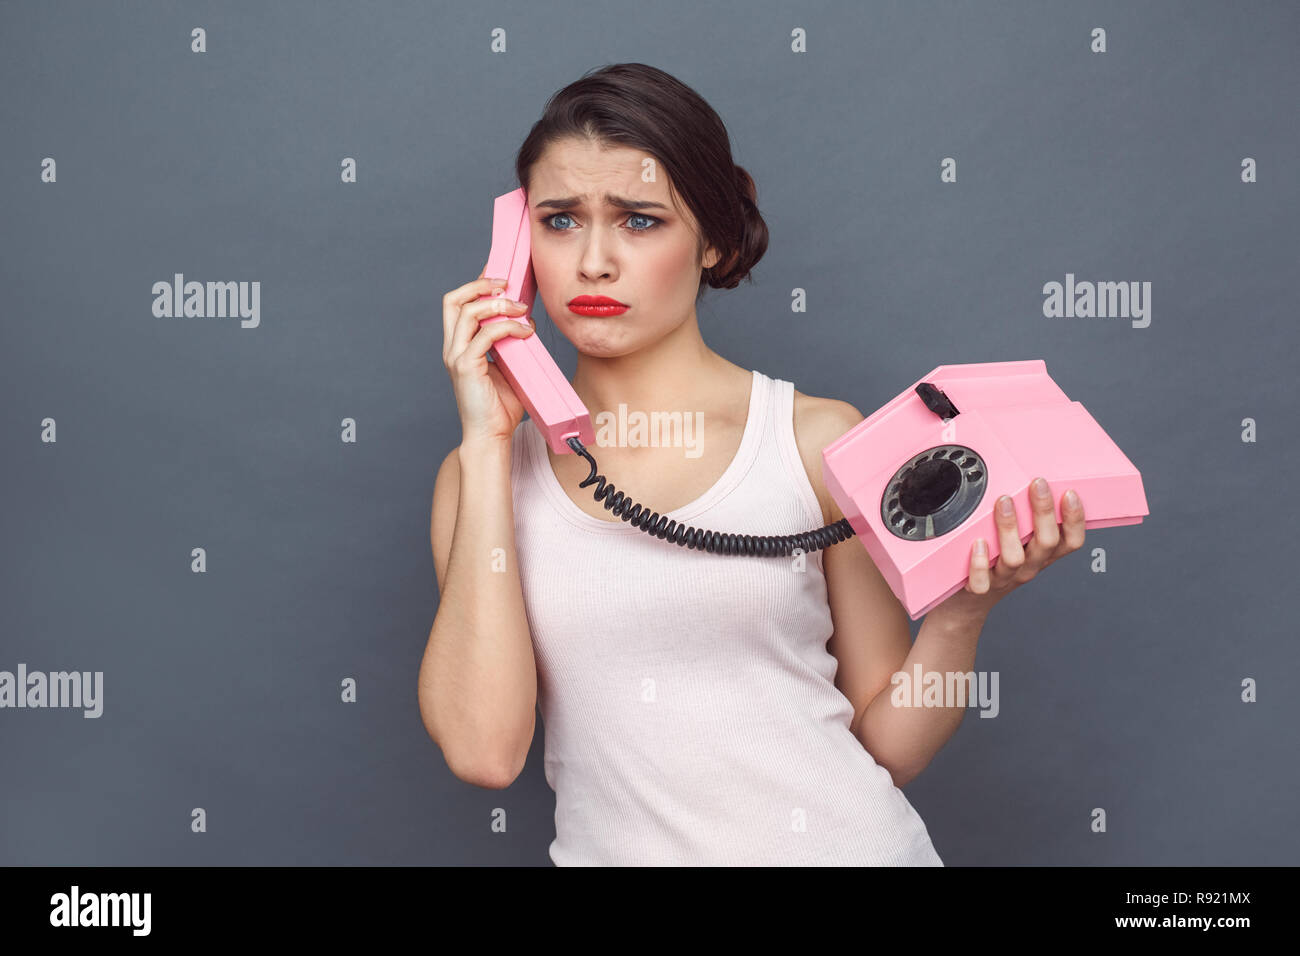 Young woman standing isolated on grey wall holding stationary phone headset talking with boyfriend grimacing upset - Stock Image